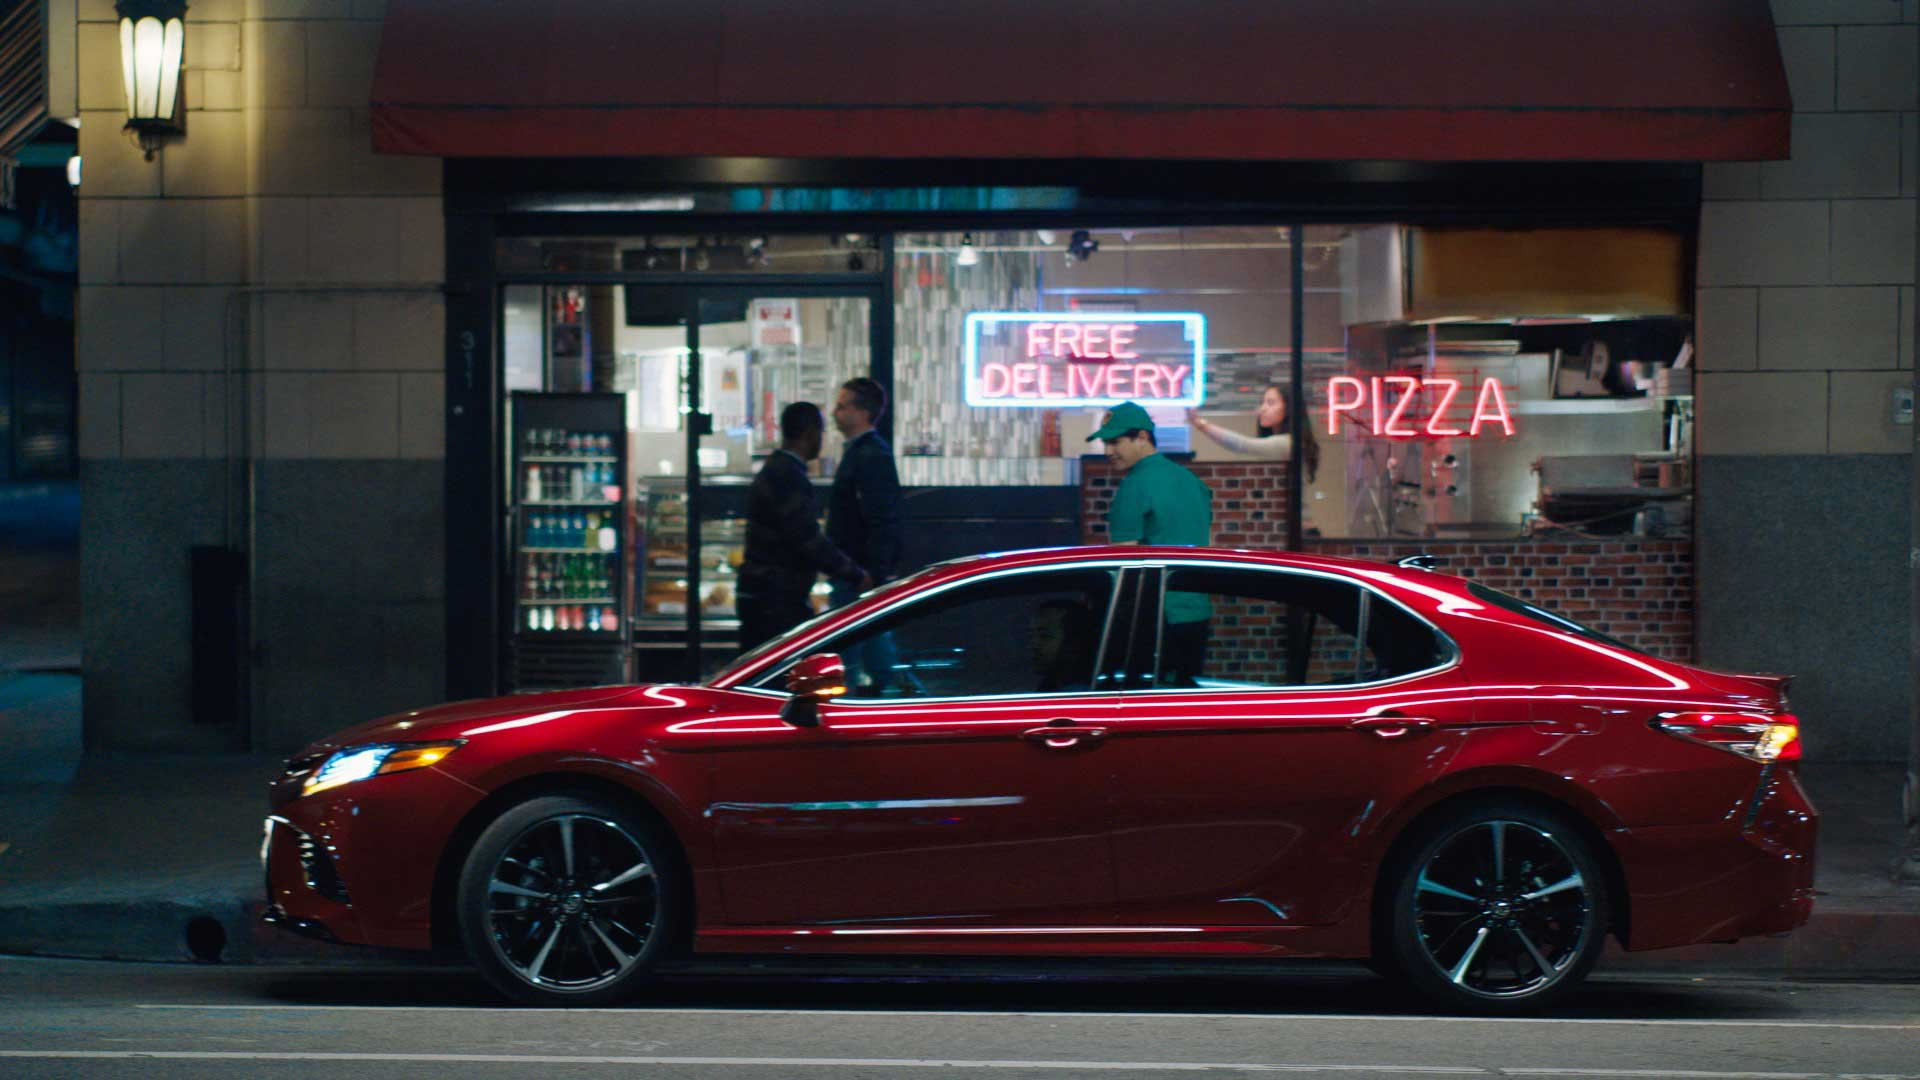 Strut, illuminates the emotional thrill while featuring the all-new Camry's jaw-dropping style on an unapologetic joy ride to pick up a pizza. Strut also incorporates a high-energy music track that complements the proud feeling portrayed in the story.